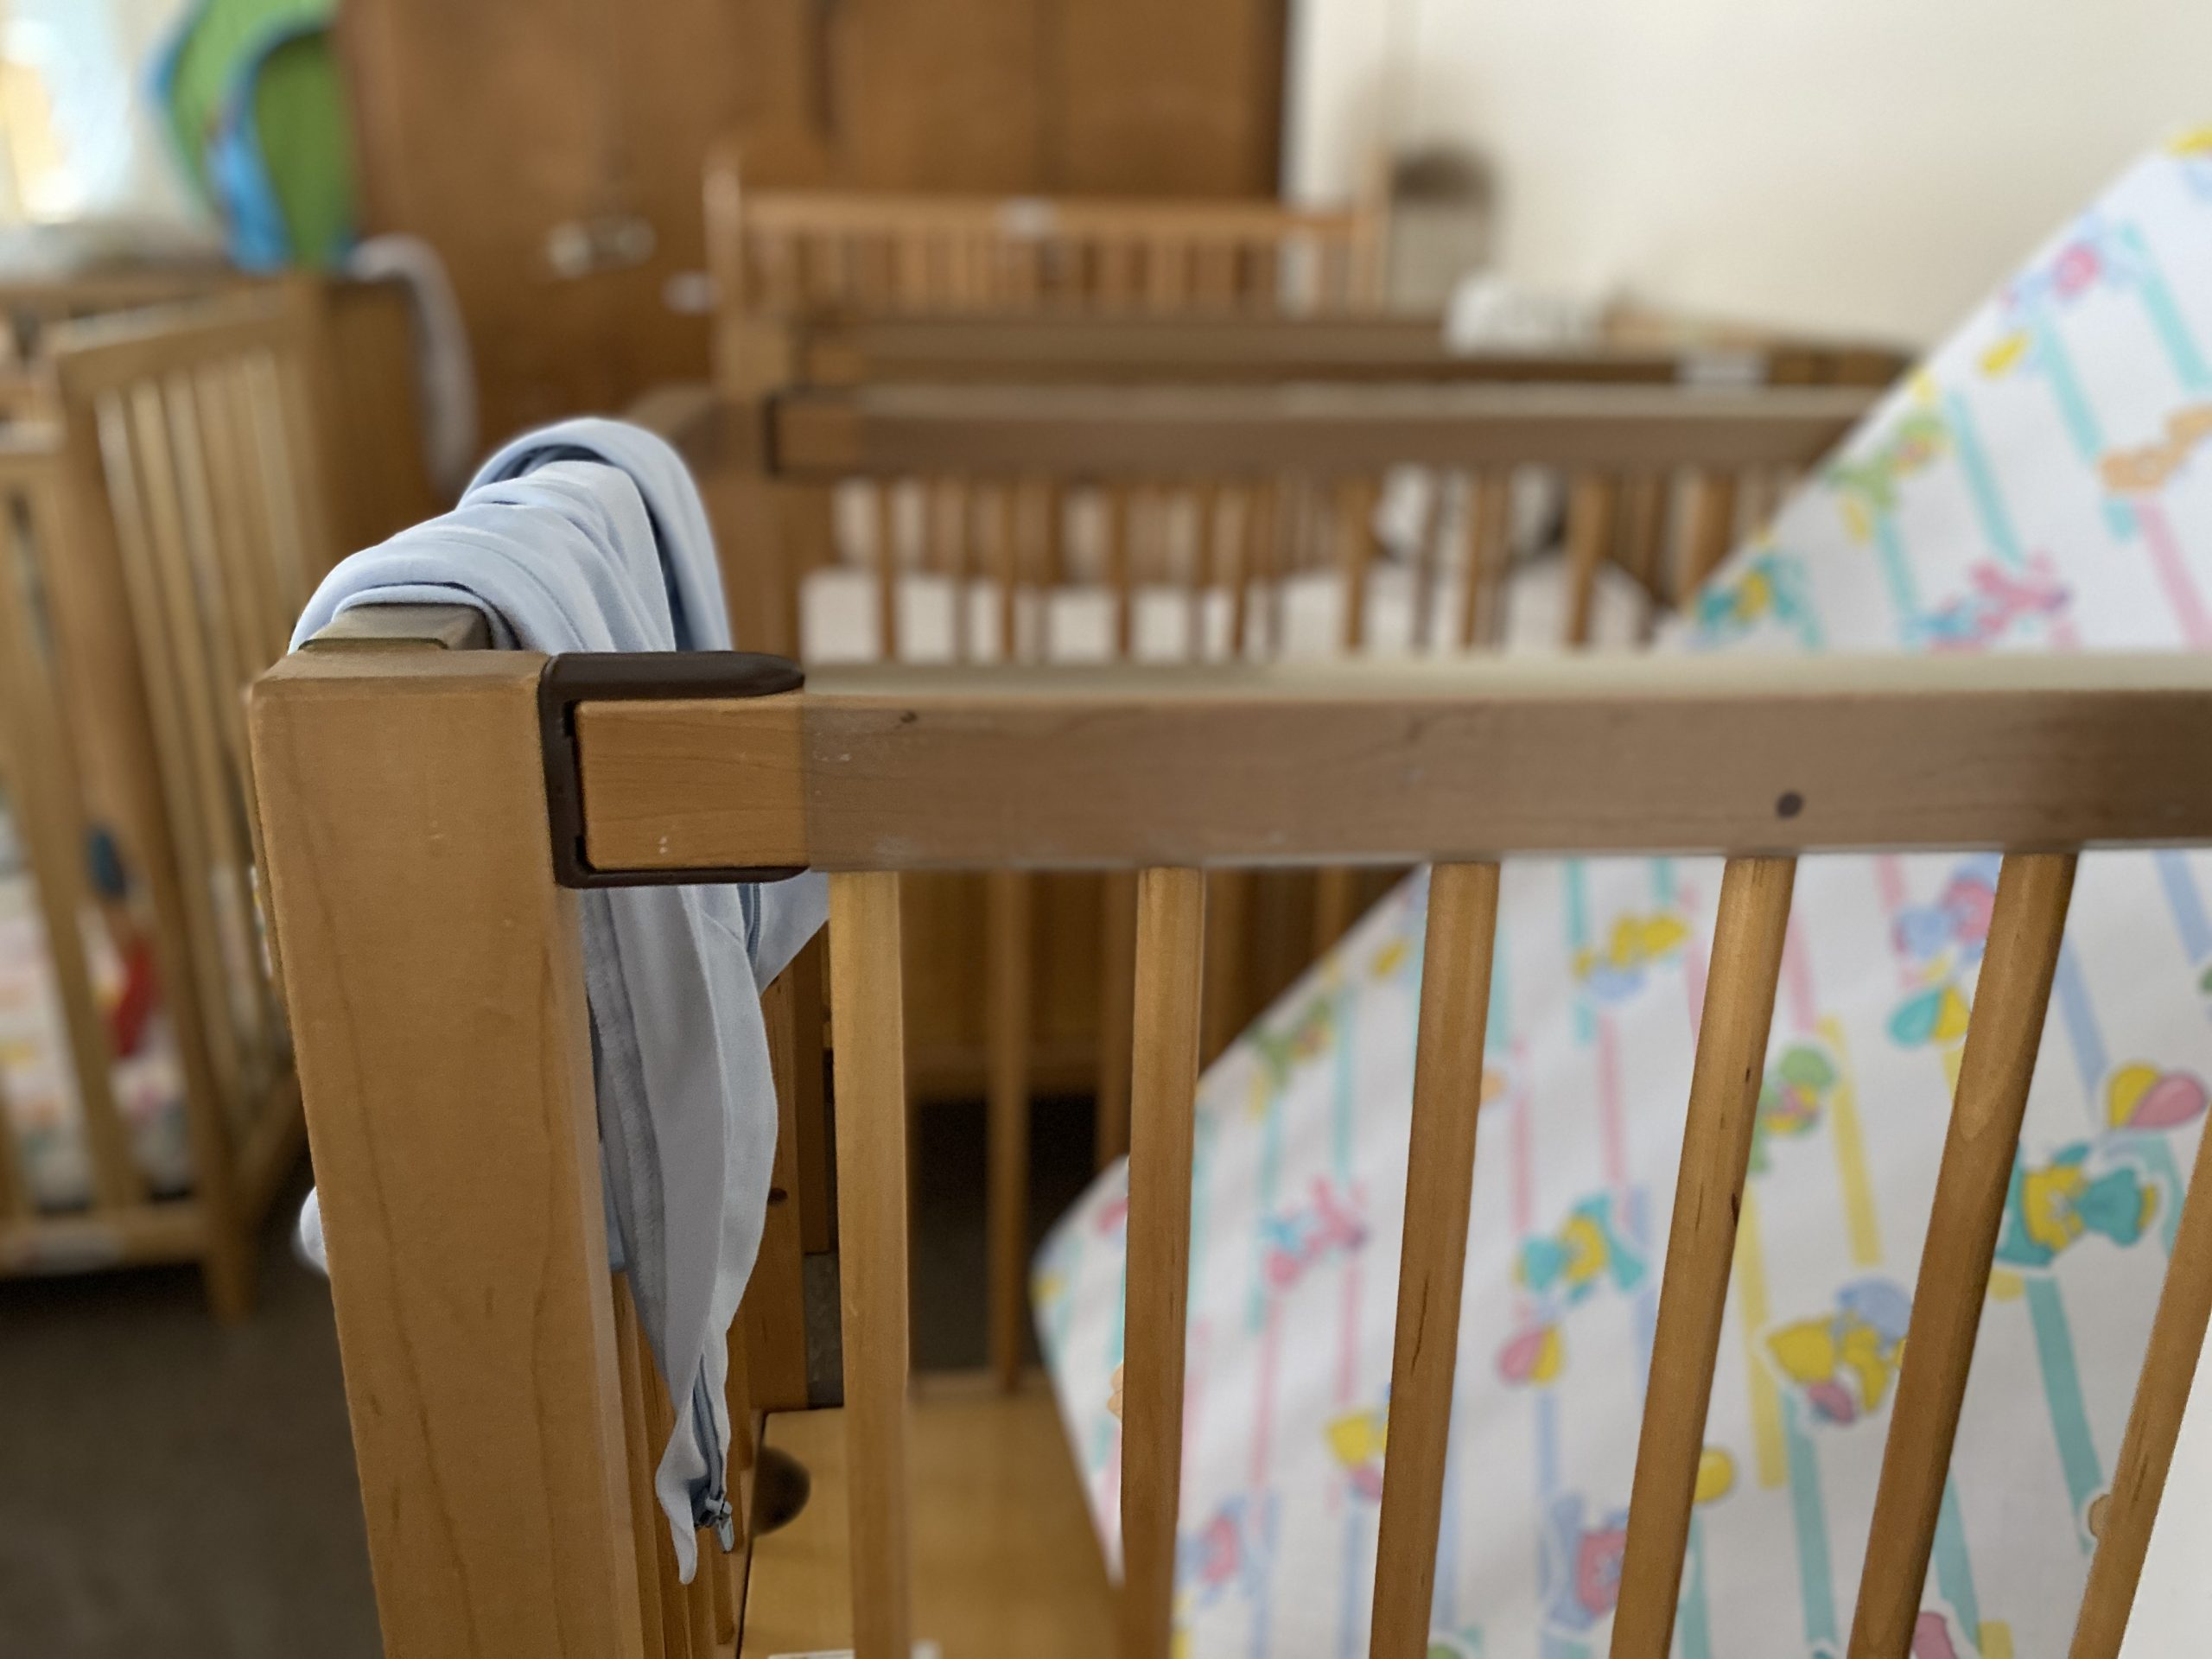 Child care closures aren't as bad as feared— but long-term issues still loom